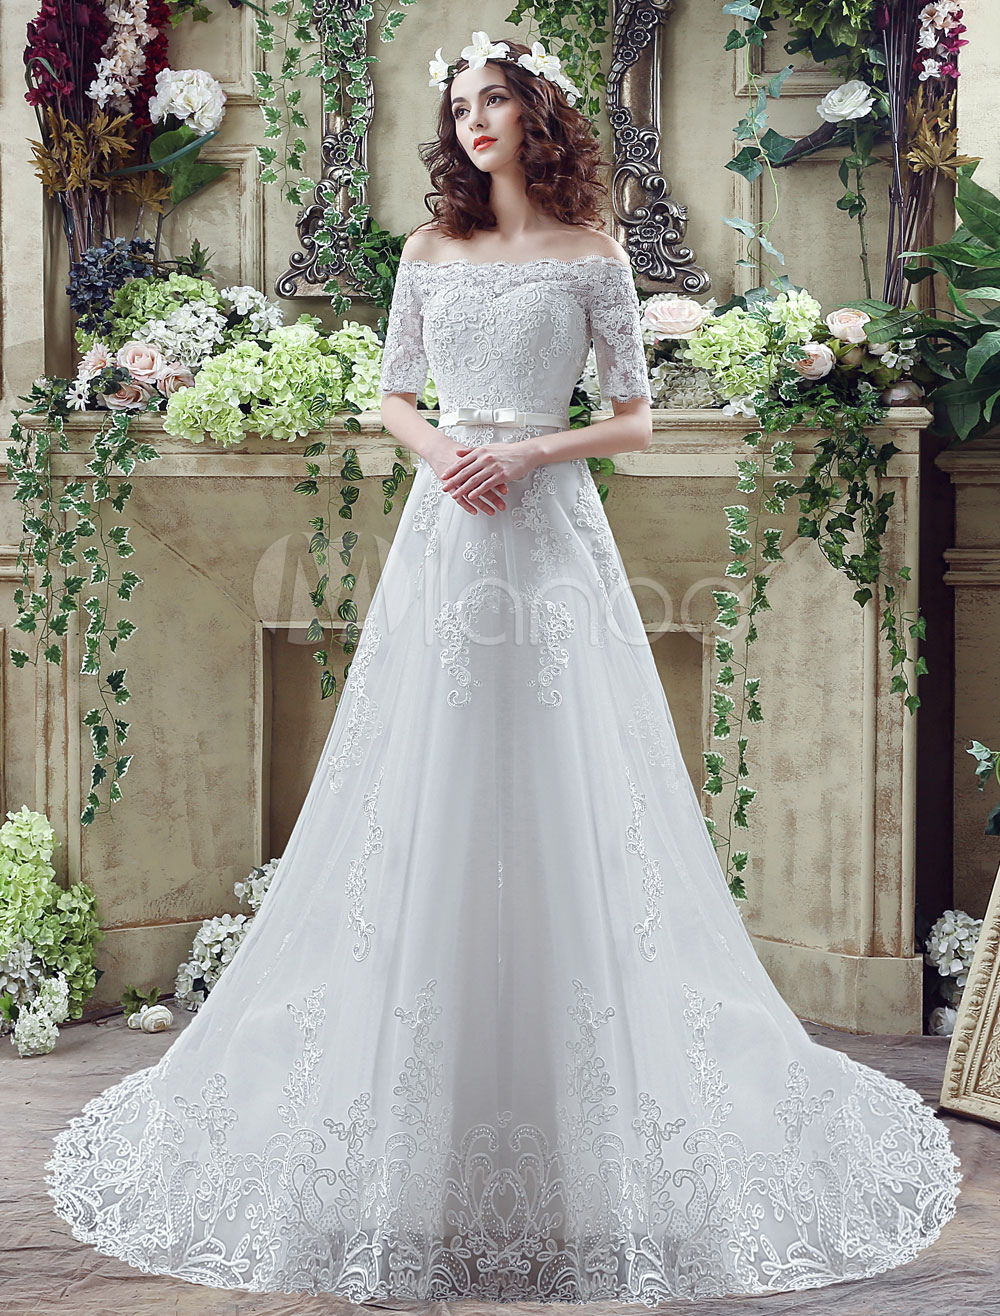 Off-the-shoulder Lace Weddding Dress Half Sleeves Bridal Gown Chapel Train A-line Bridal Dress